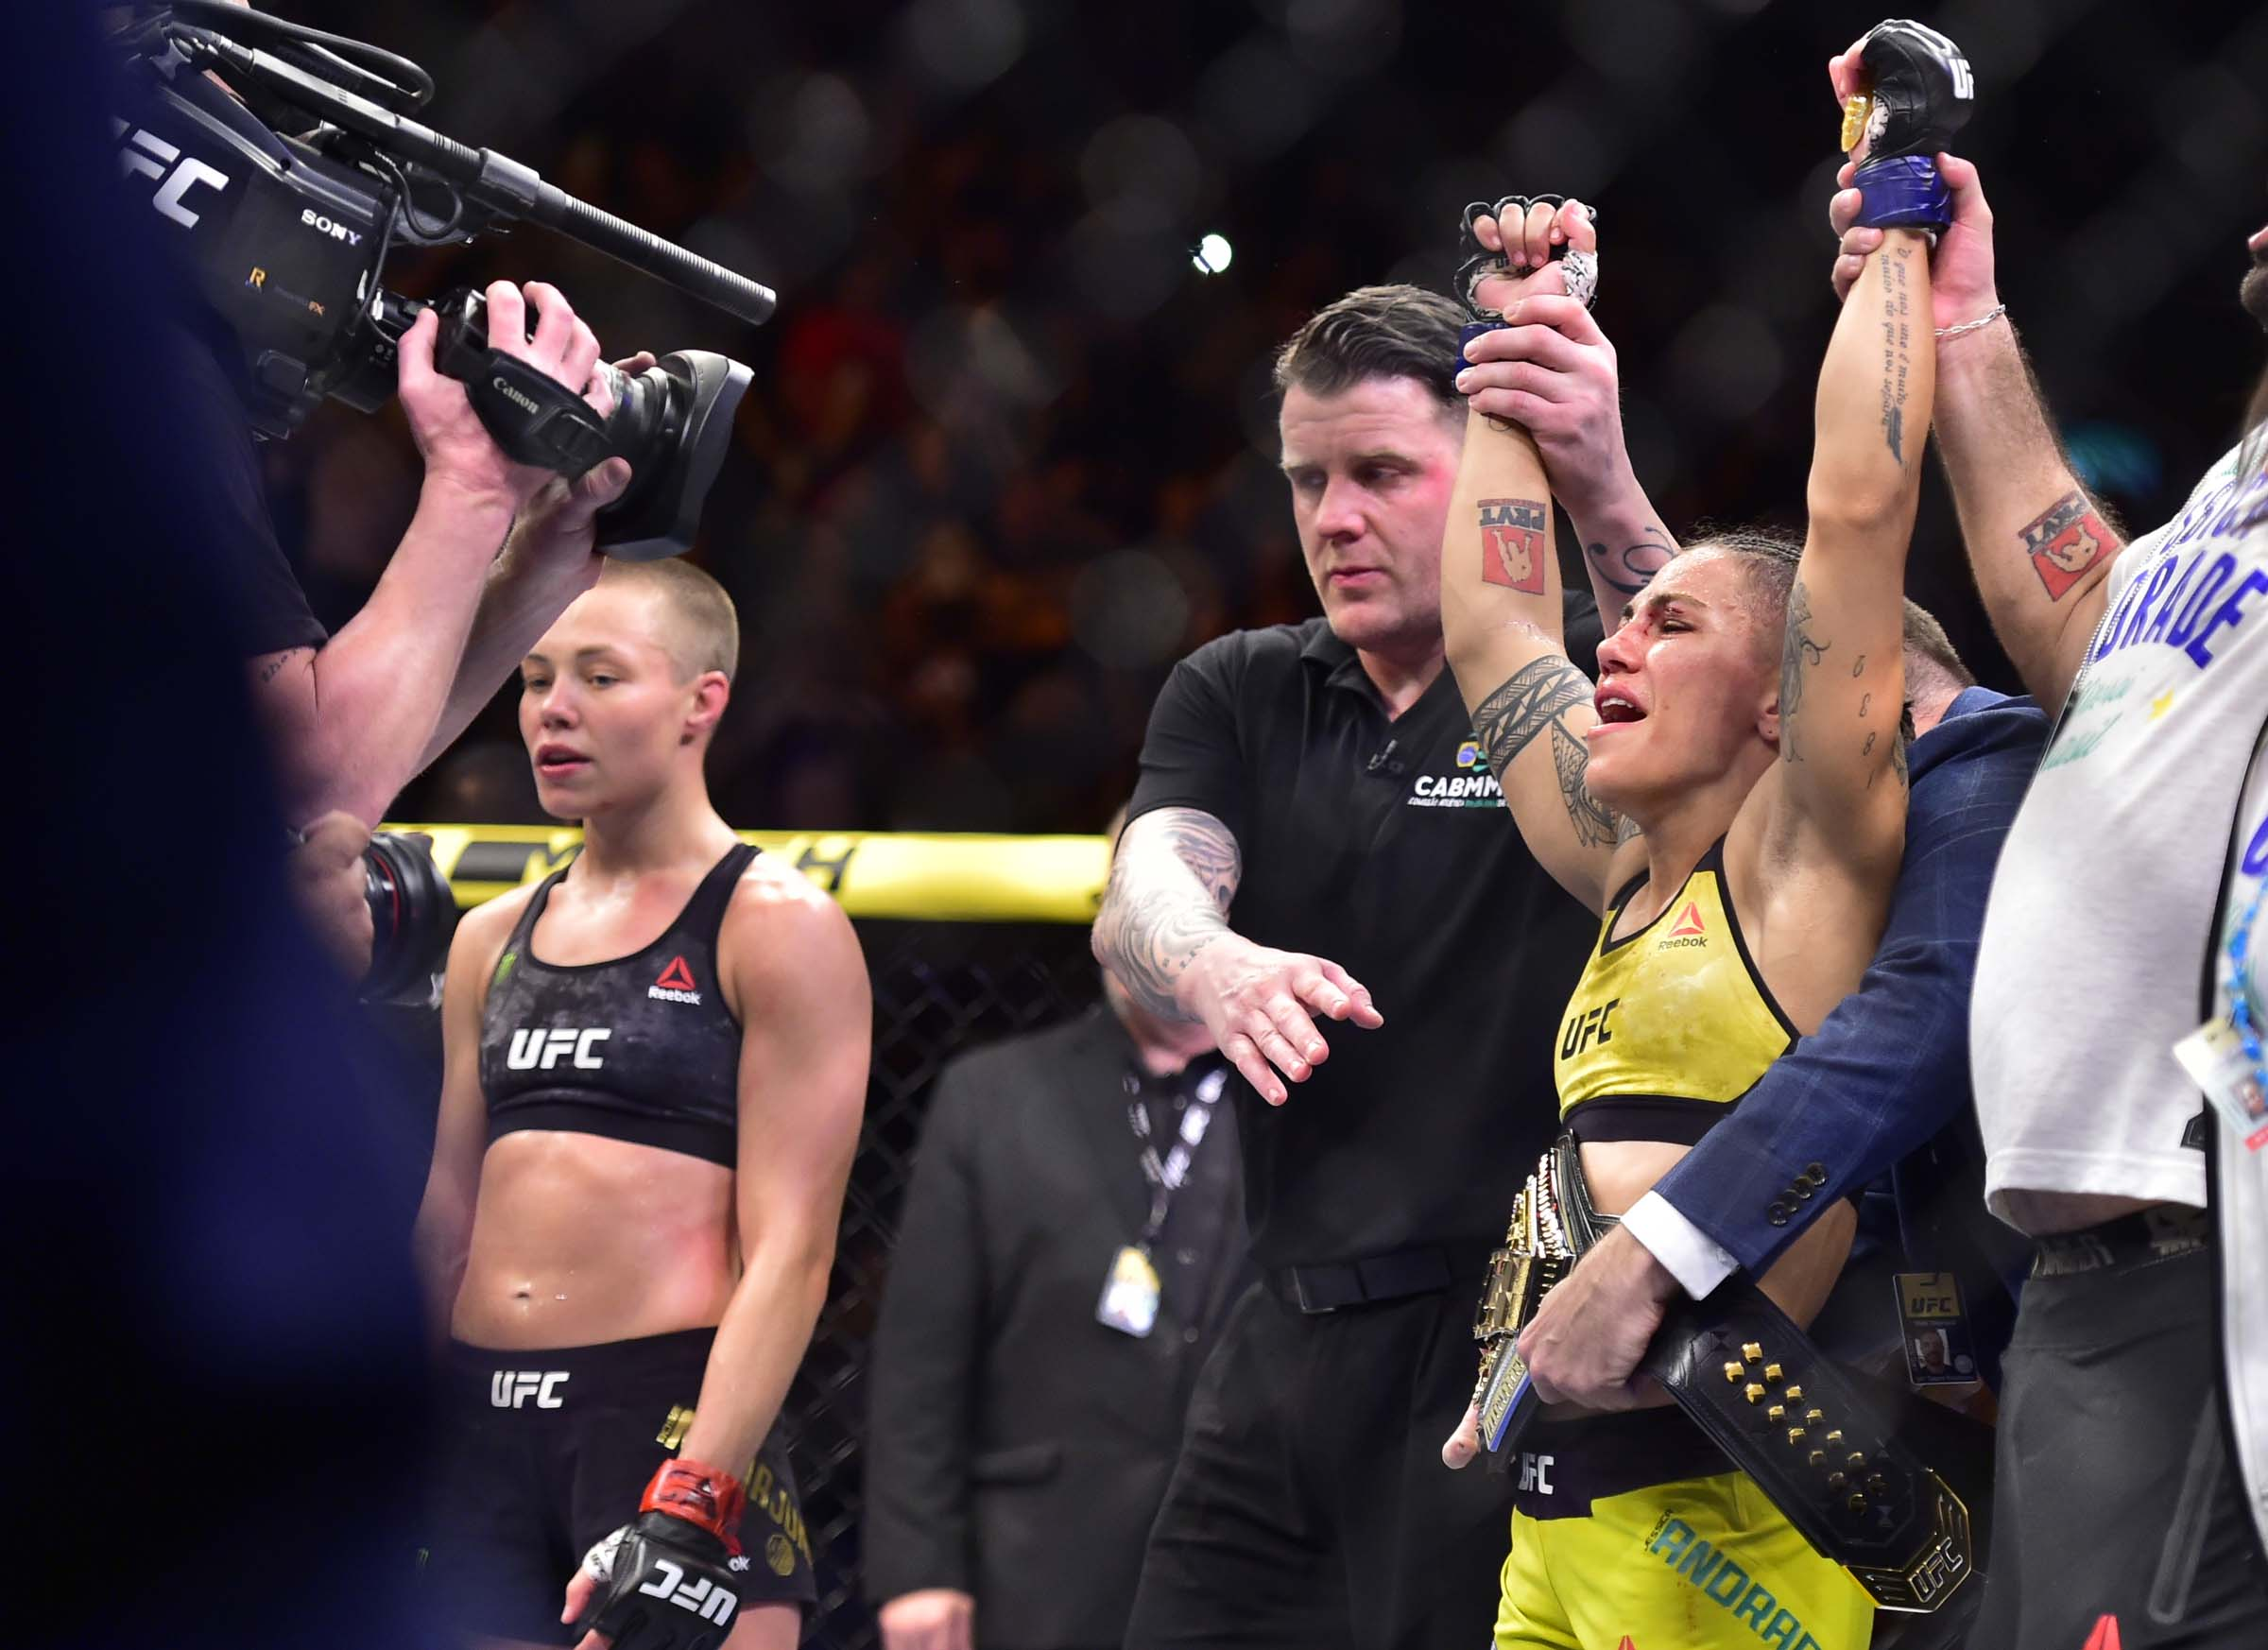 Jessica Andrade Wins Strawweight Gold at UFC 237 After Slamming Rose Namajunas On Her Head (Video)